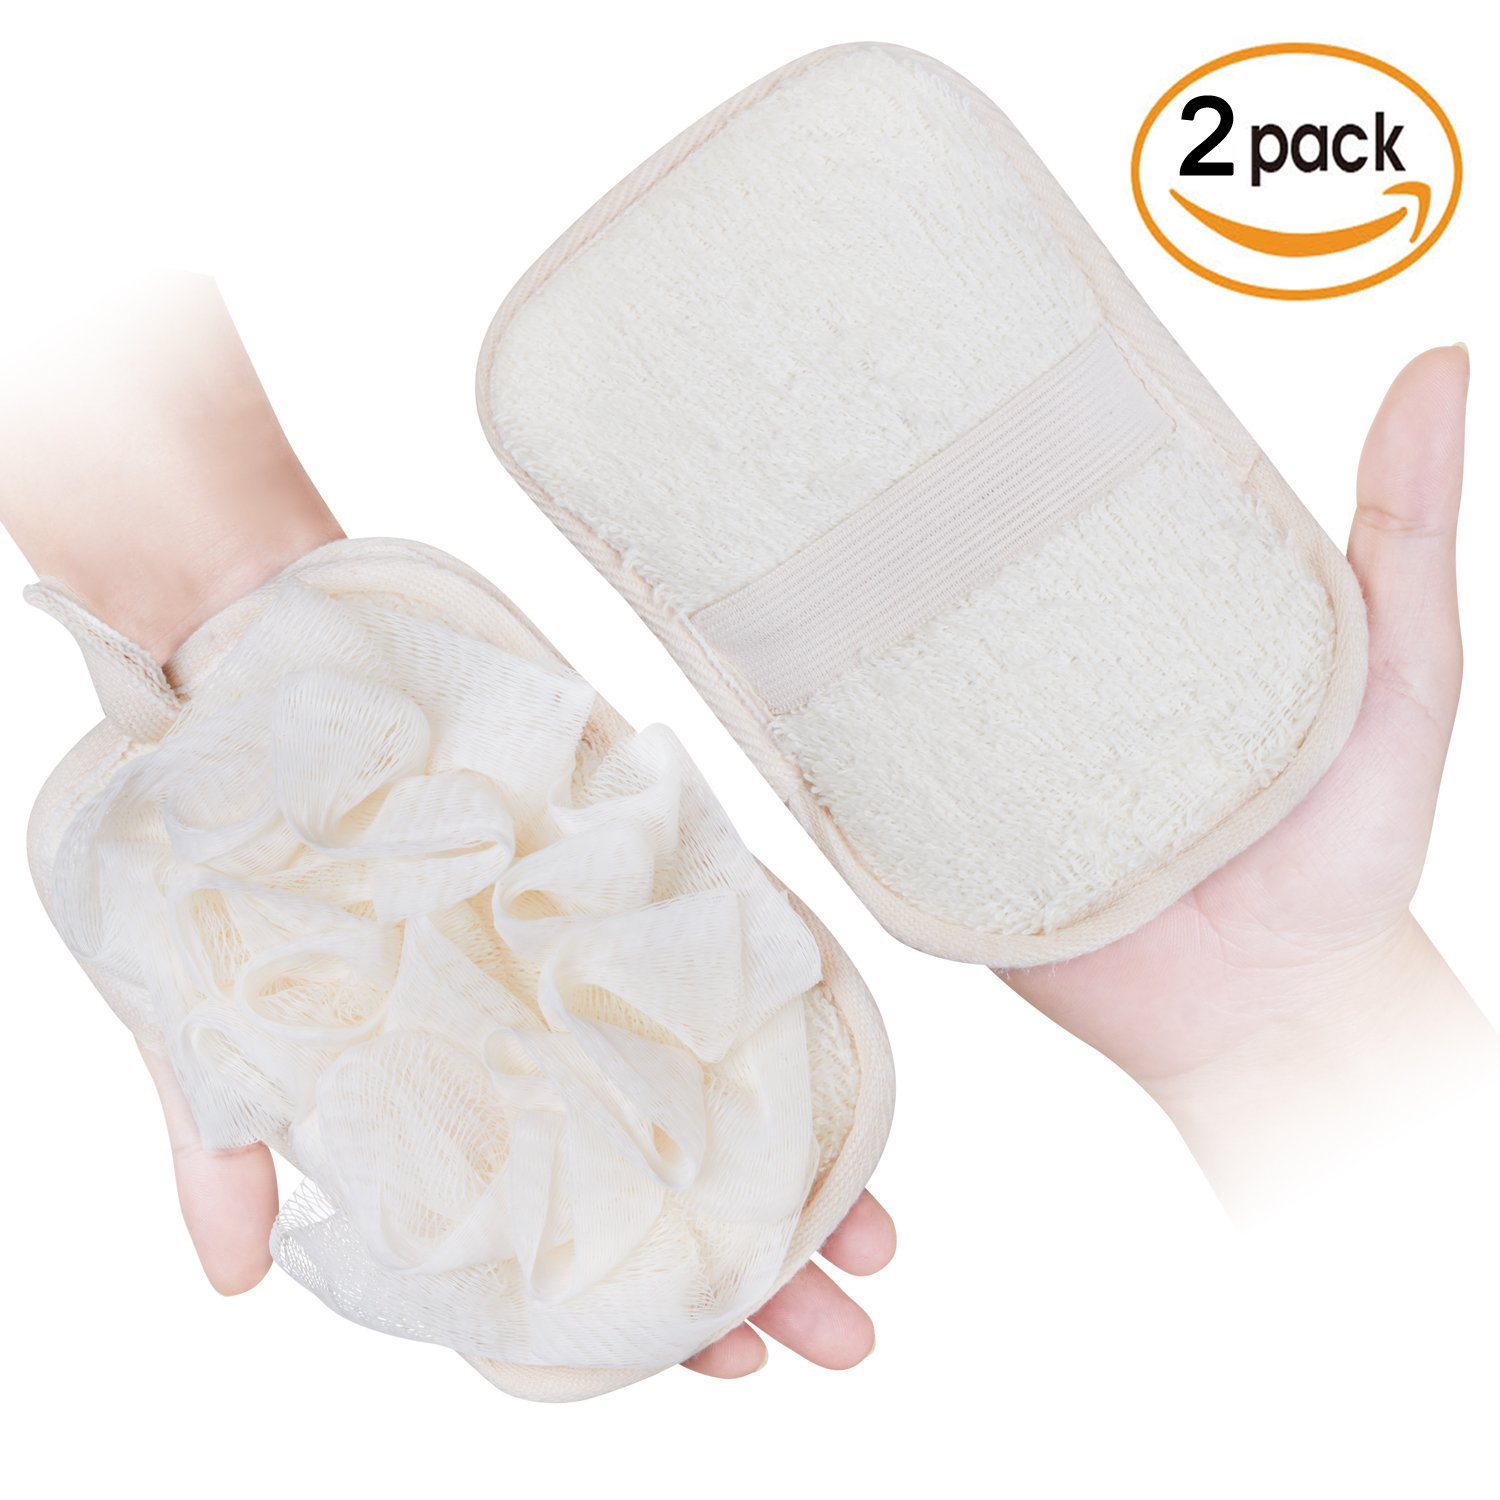 mikimini Bath Mitt for Women, Bath Pouf Mesh Brushes 2 Packs Set | Loofah Sponge & Exfoliating Pad 2 in 1 Professional Design | Exfoliating Gently with the Elastic Hand Strap or Wearing the Mitten